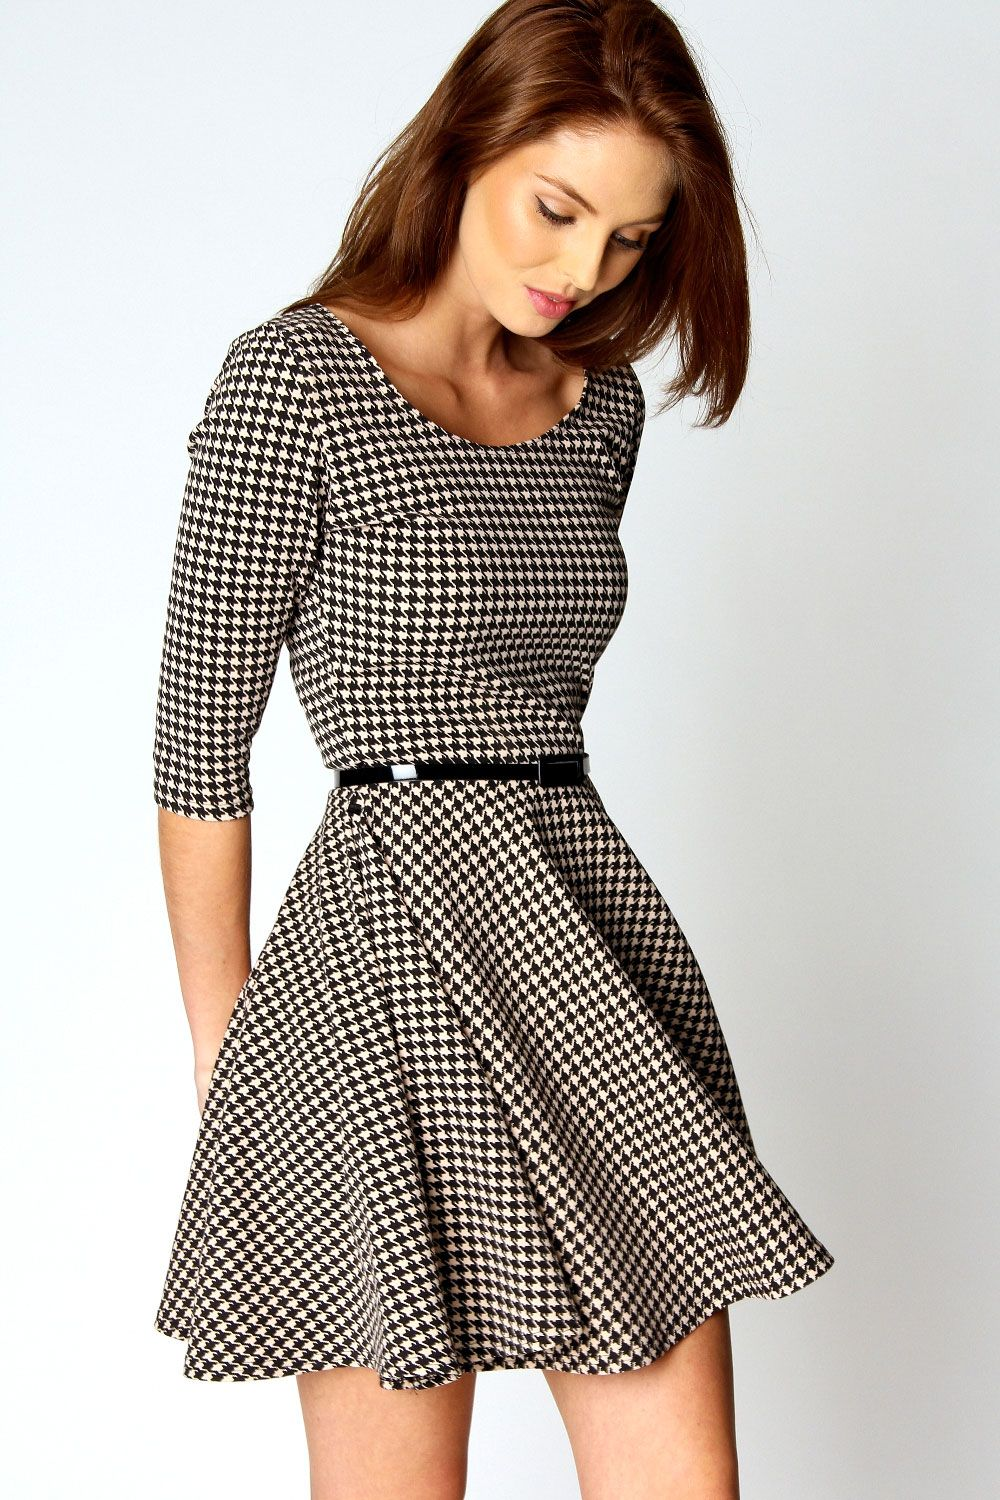 Details about Boohoo Zoe 3/4 Sleeve Dogtooth Belted Skater Dress ...